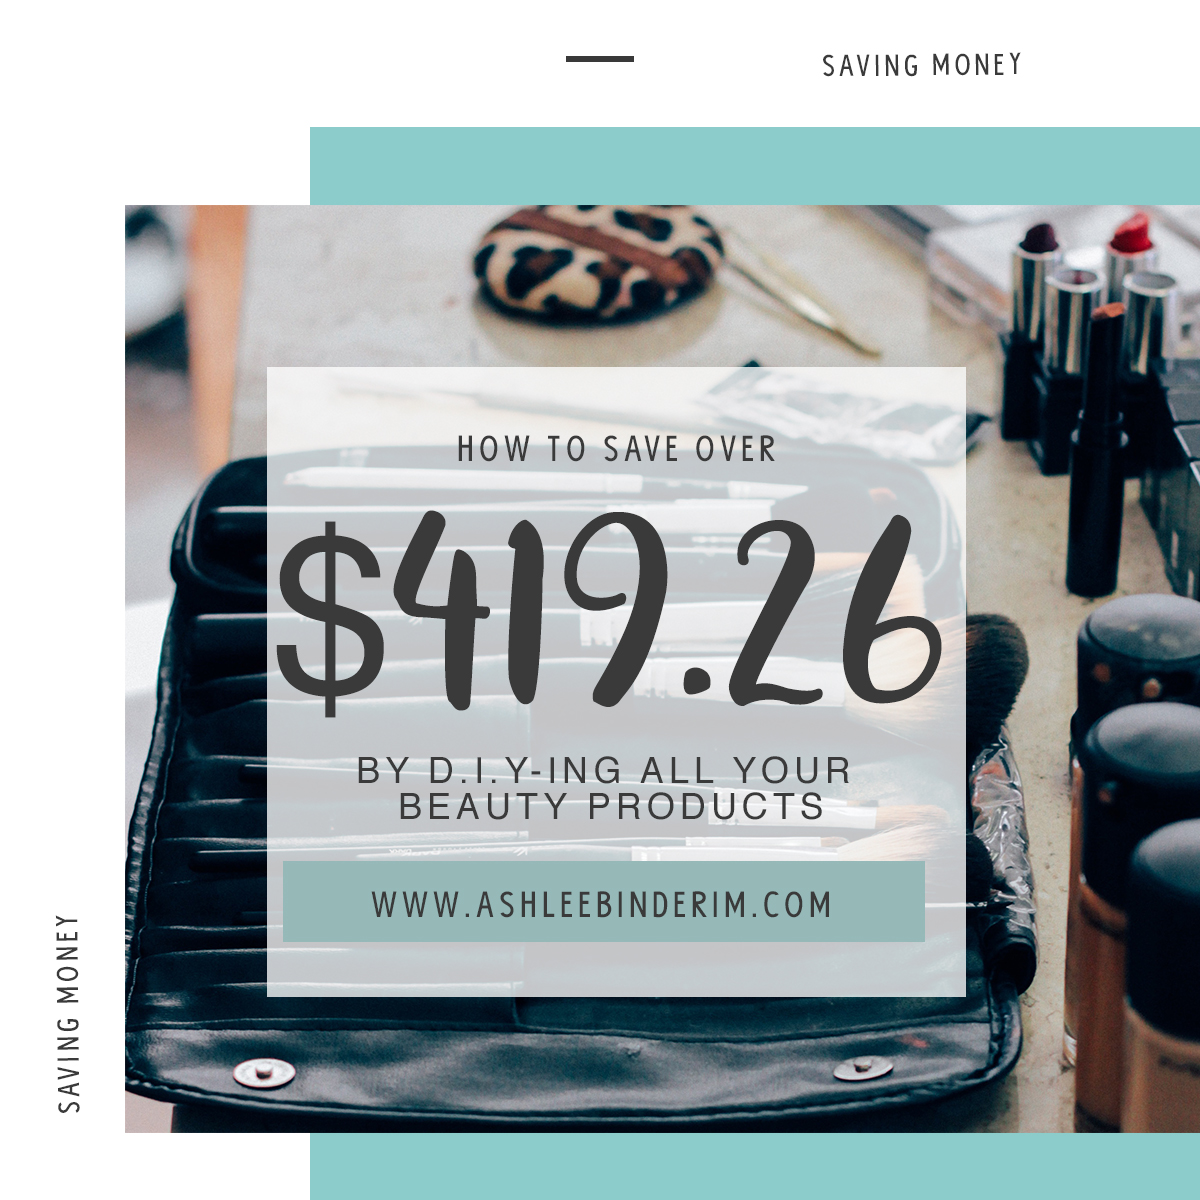 How to save $419.26 A Year by d.i.y-ing your beauty products